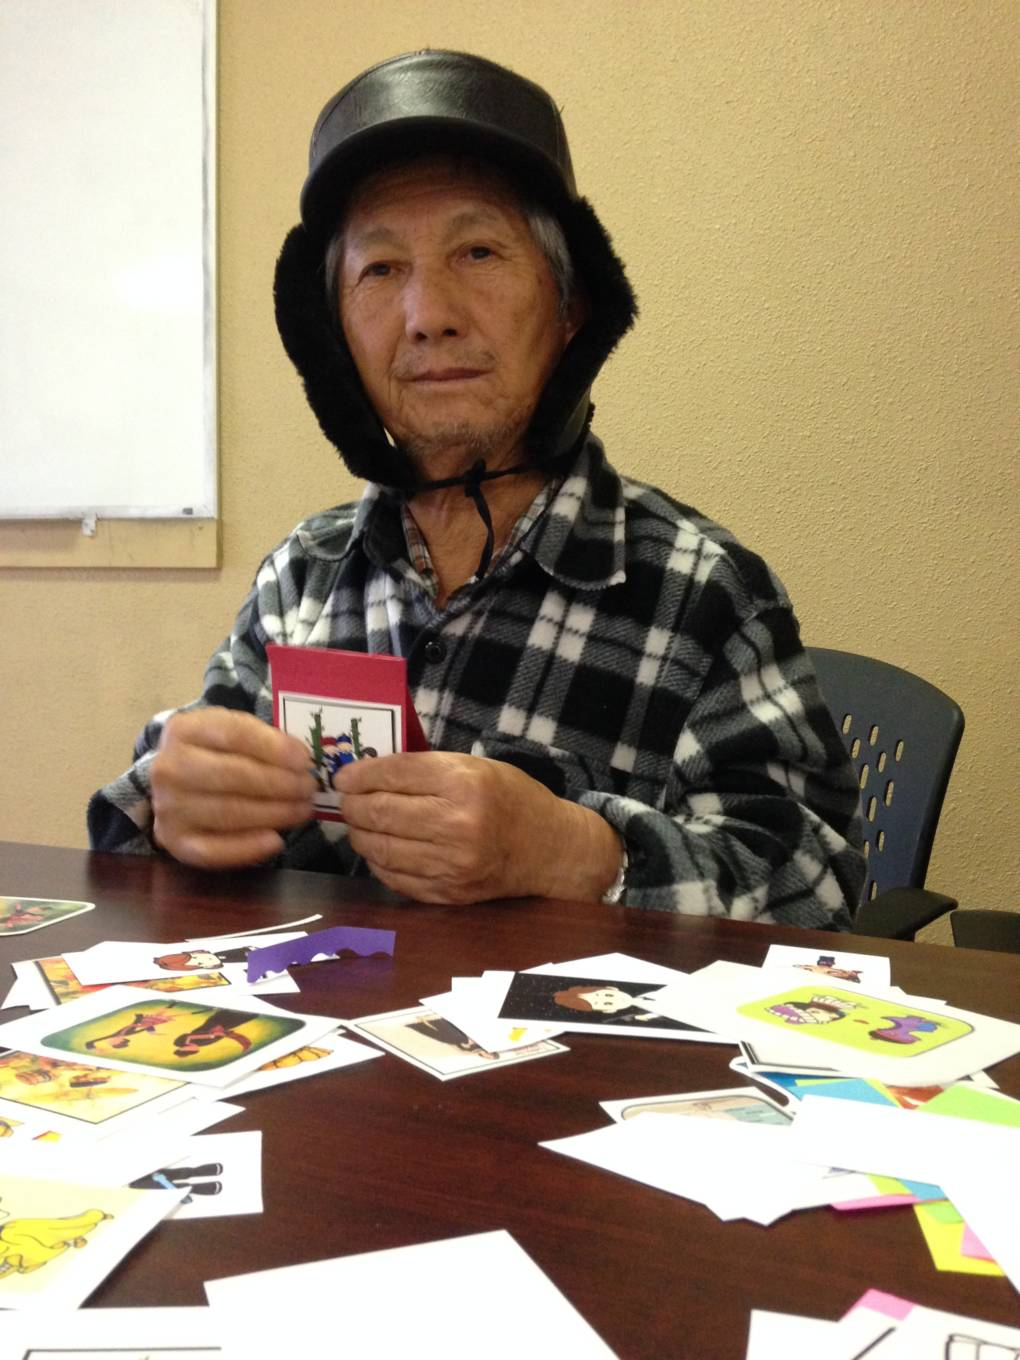 Vong Vang Xiong fought in Laos for six years in the CIA's Secret War. He does group crafts to help deal with depression.